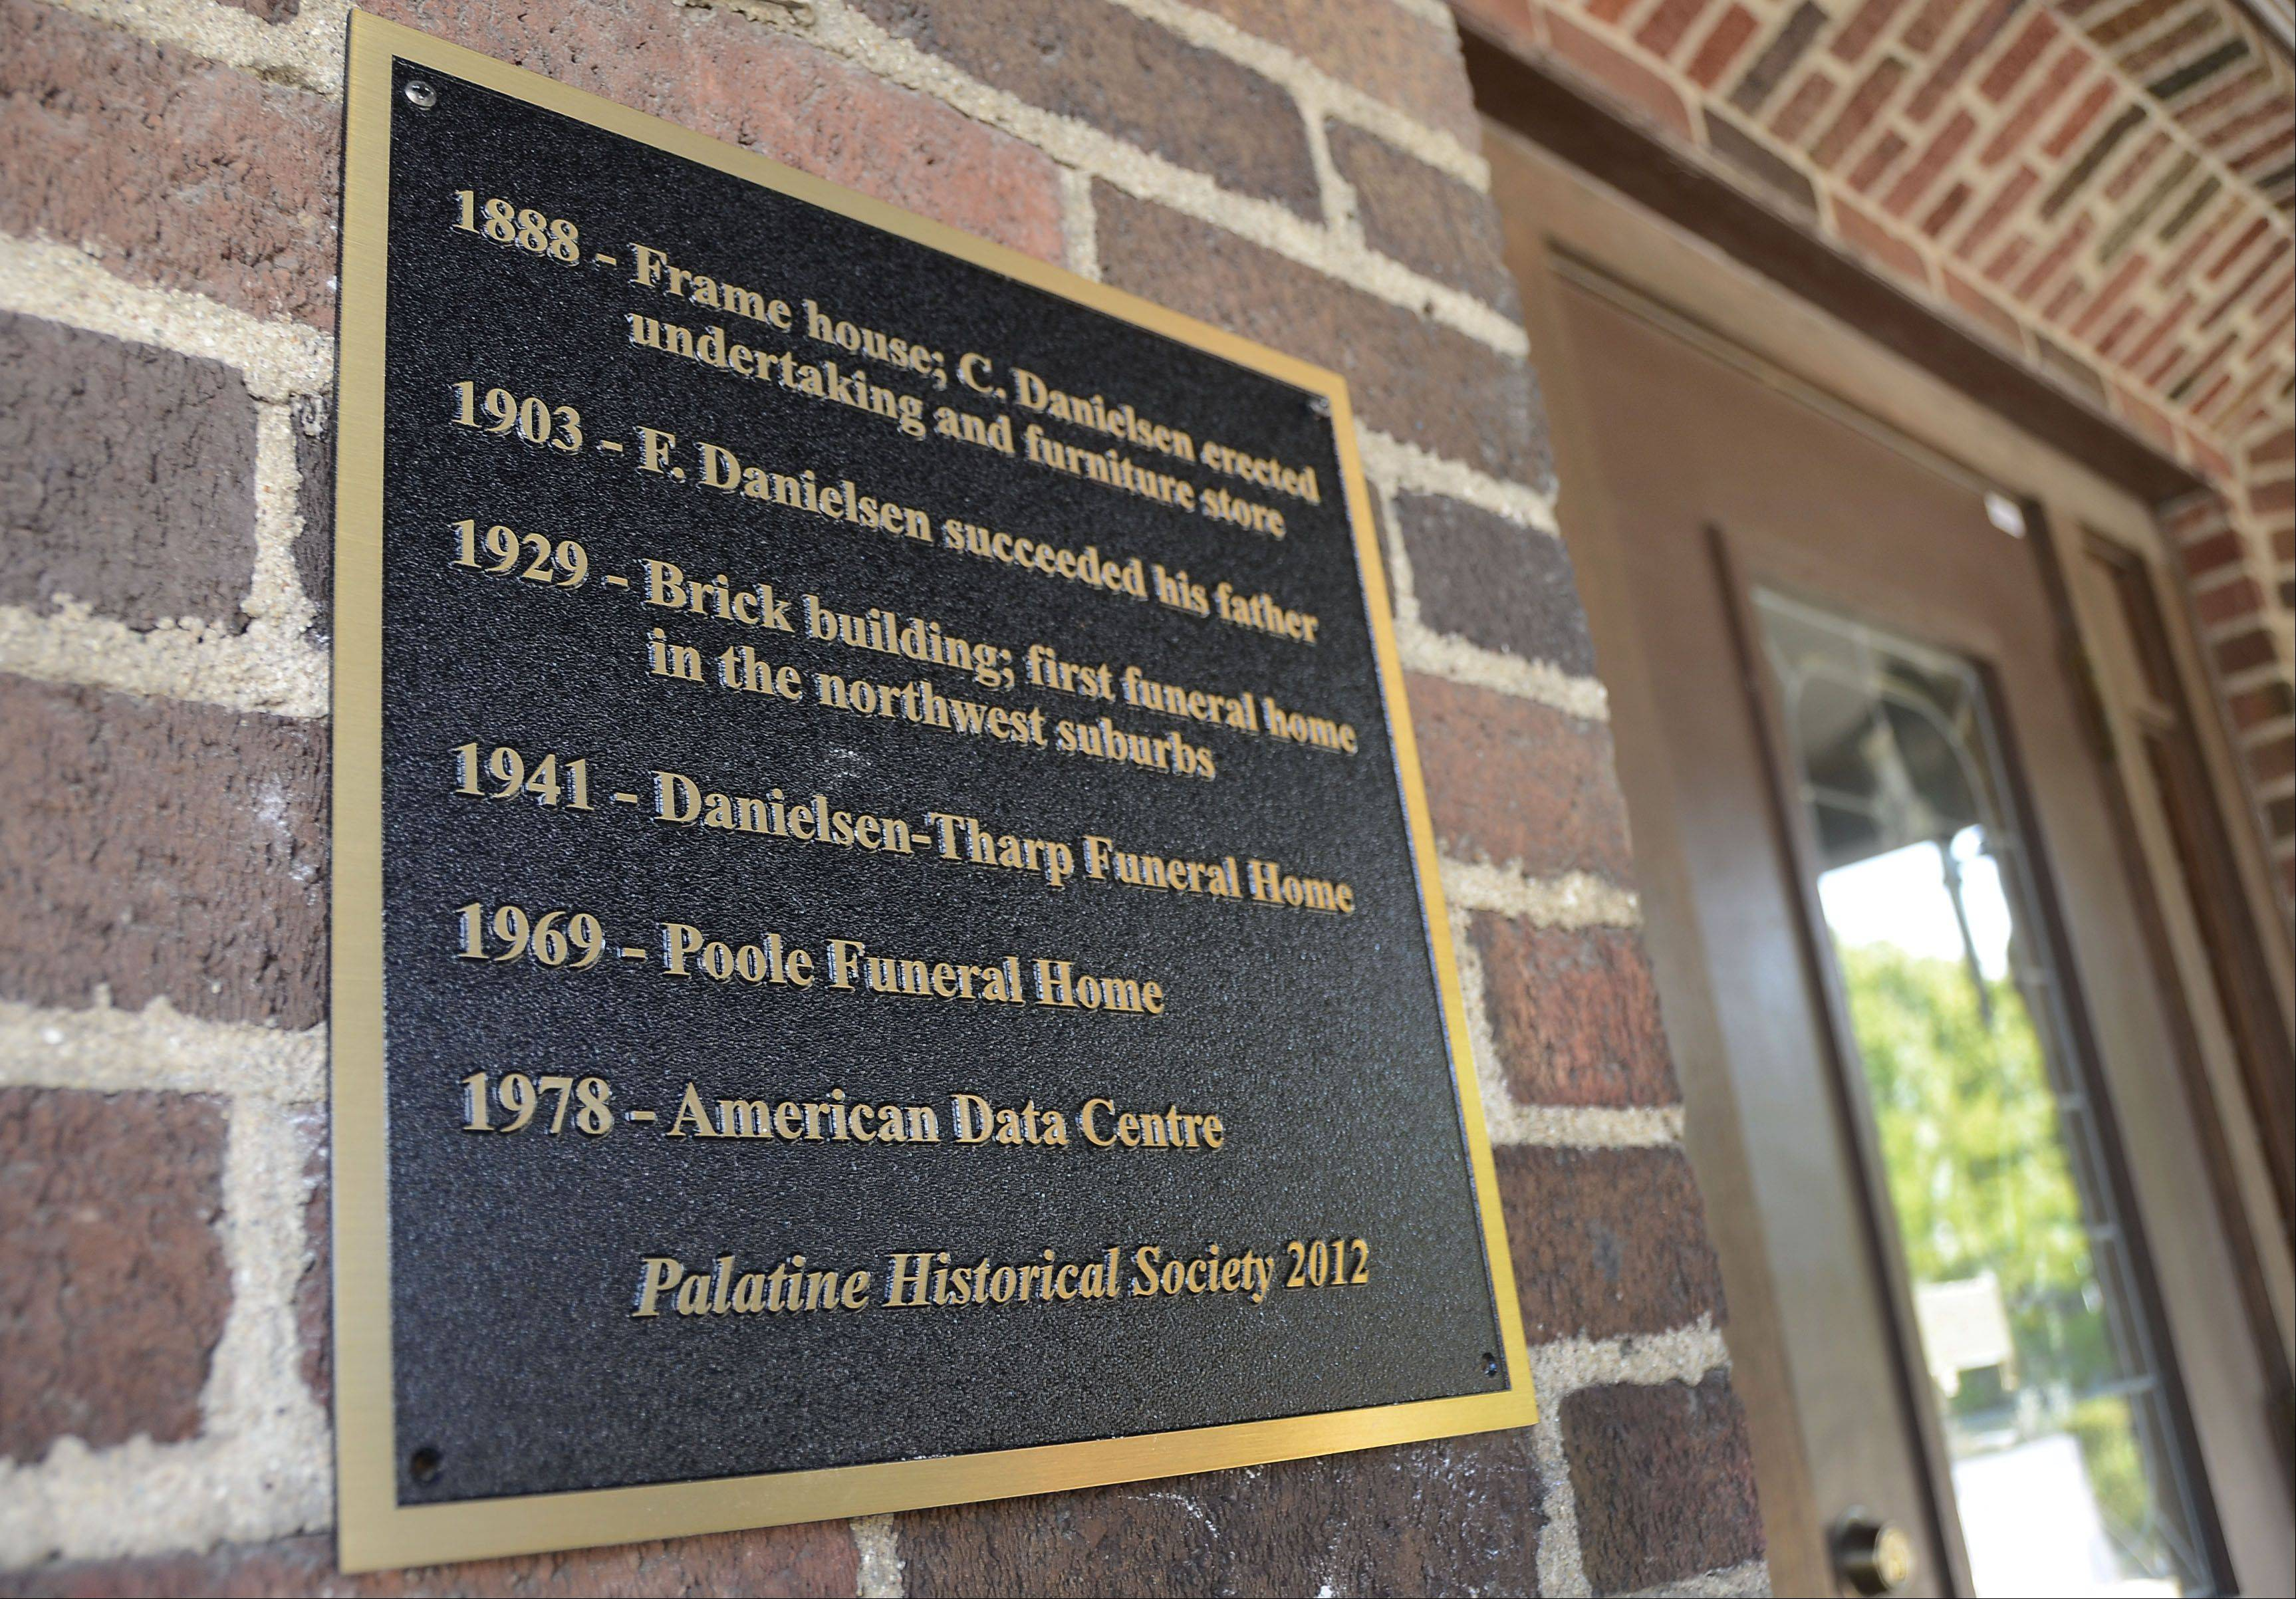 The Palatine Historical Society is erecting several plaques at sites of historical significance, including this one at 25 W. Palatine Road.